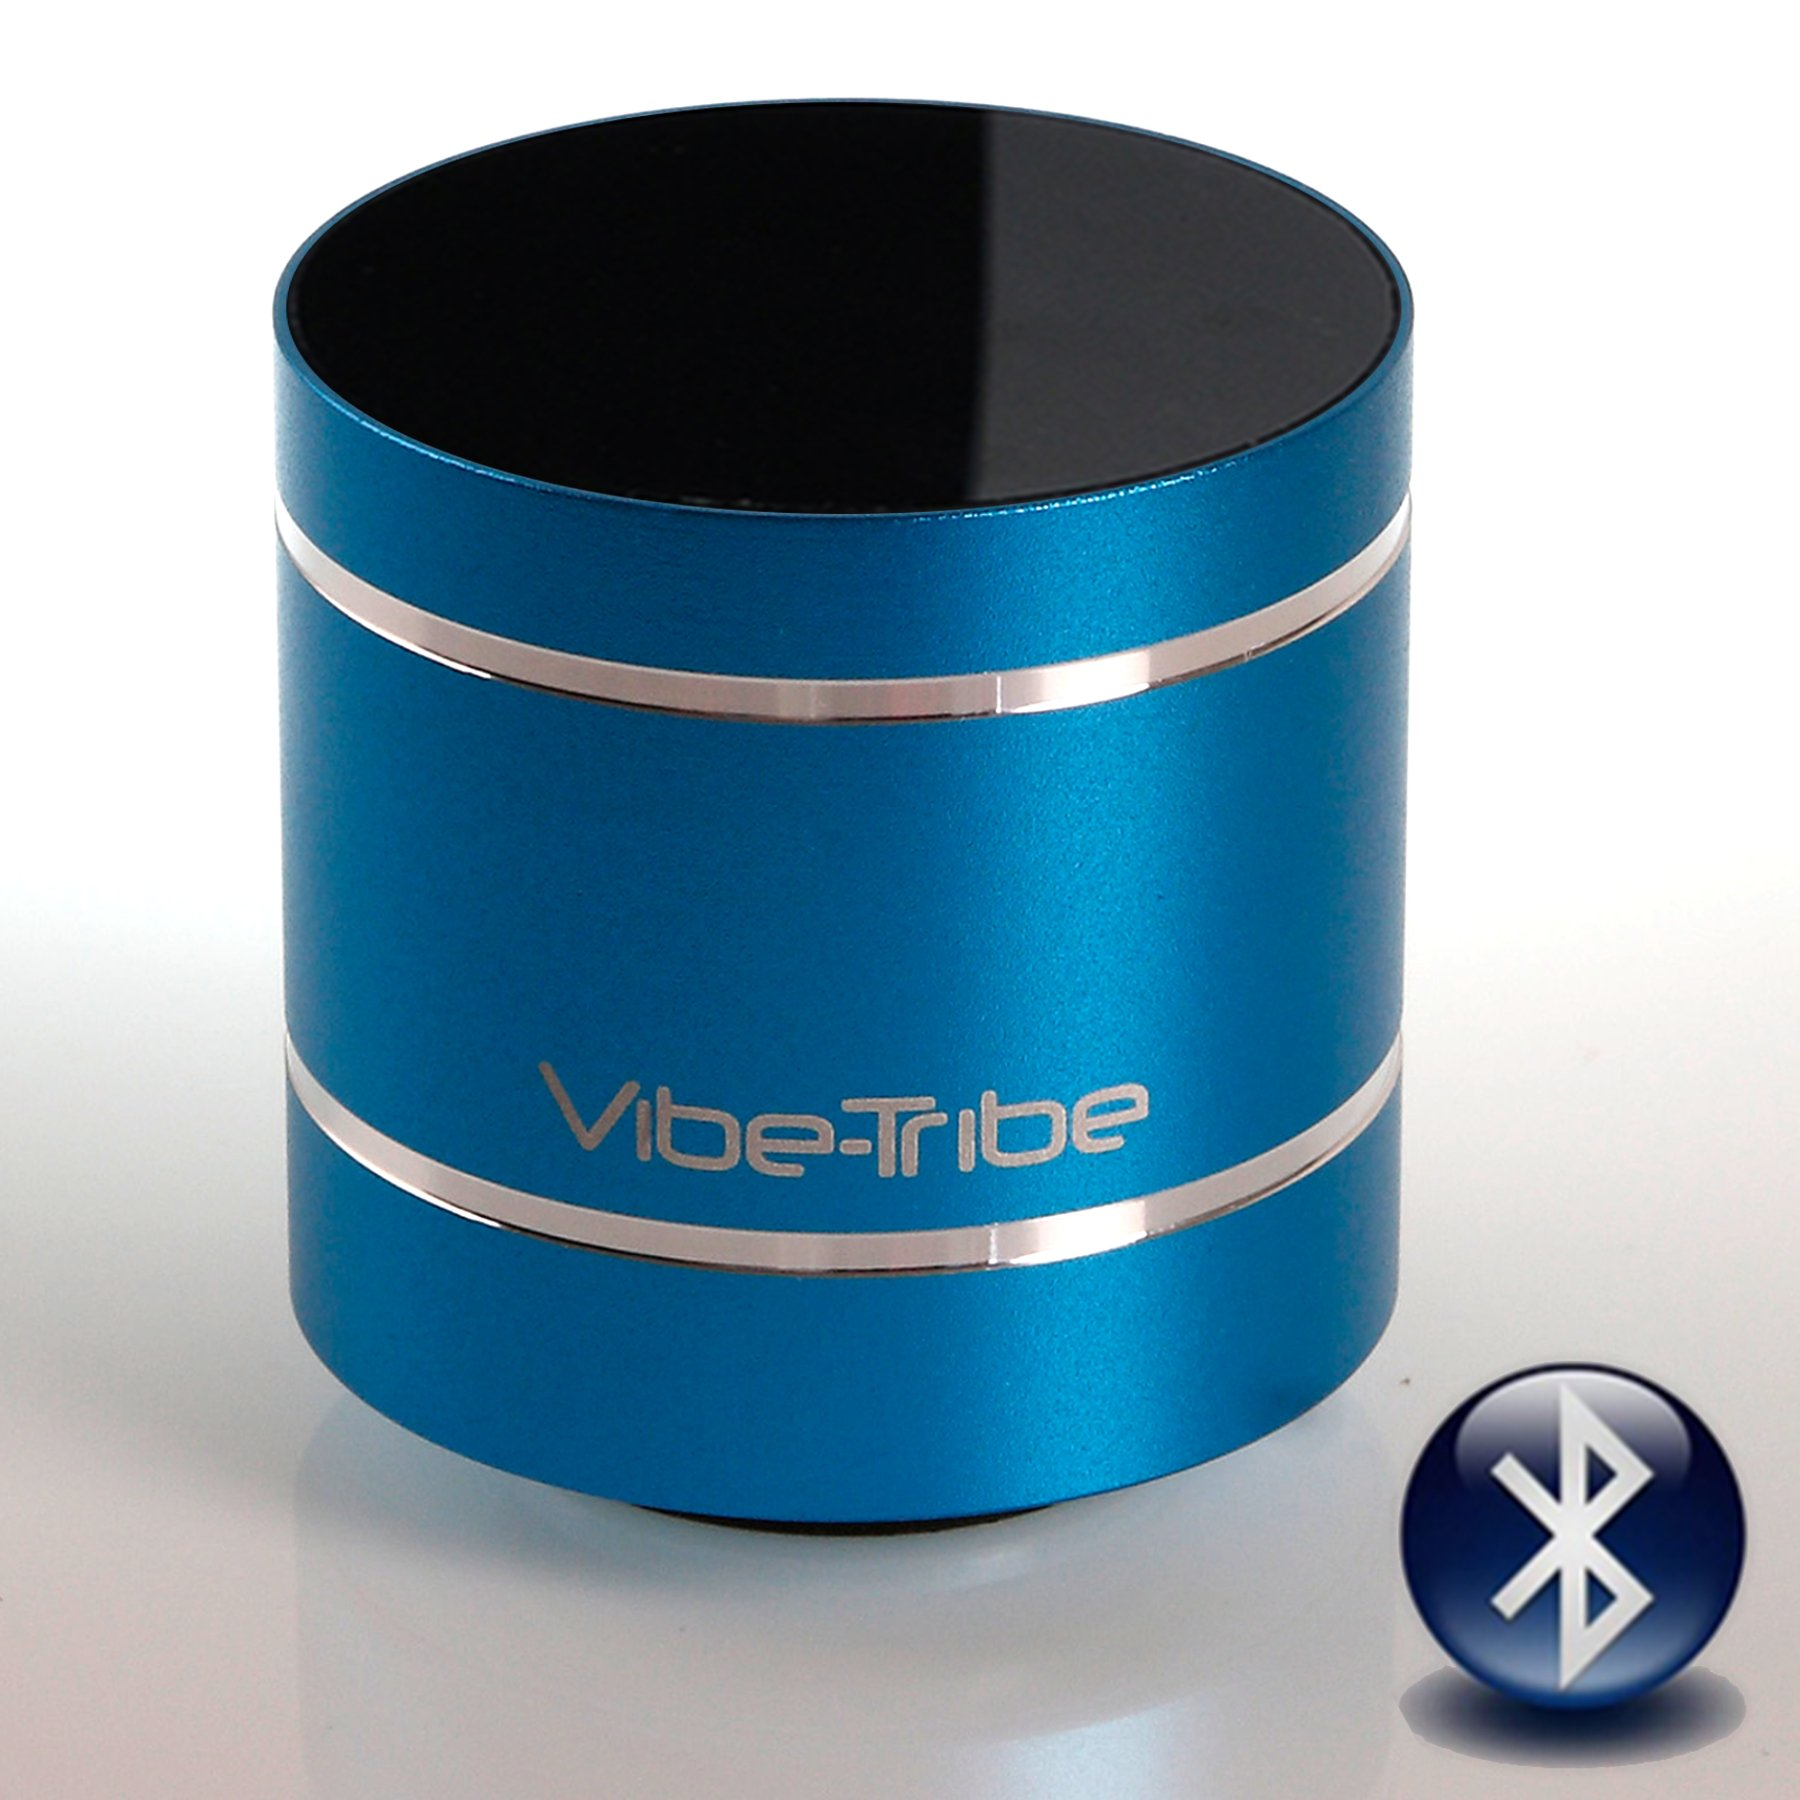 Vibe-Tribe Troll 2.0: 10W Compact Bluetooth Vibration Speaker Turquoise